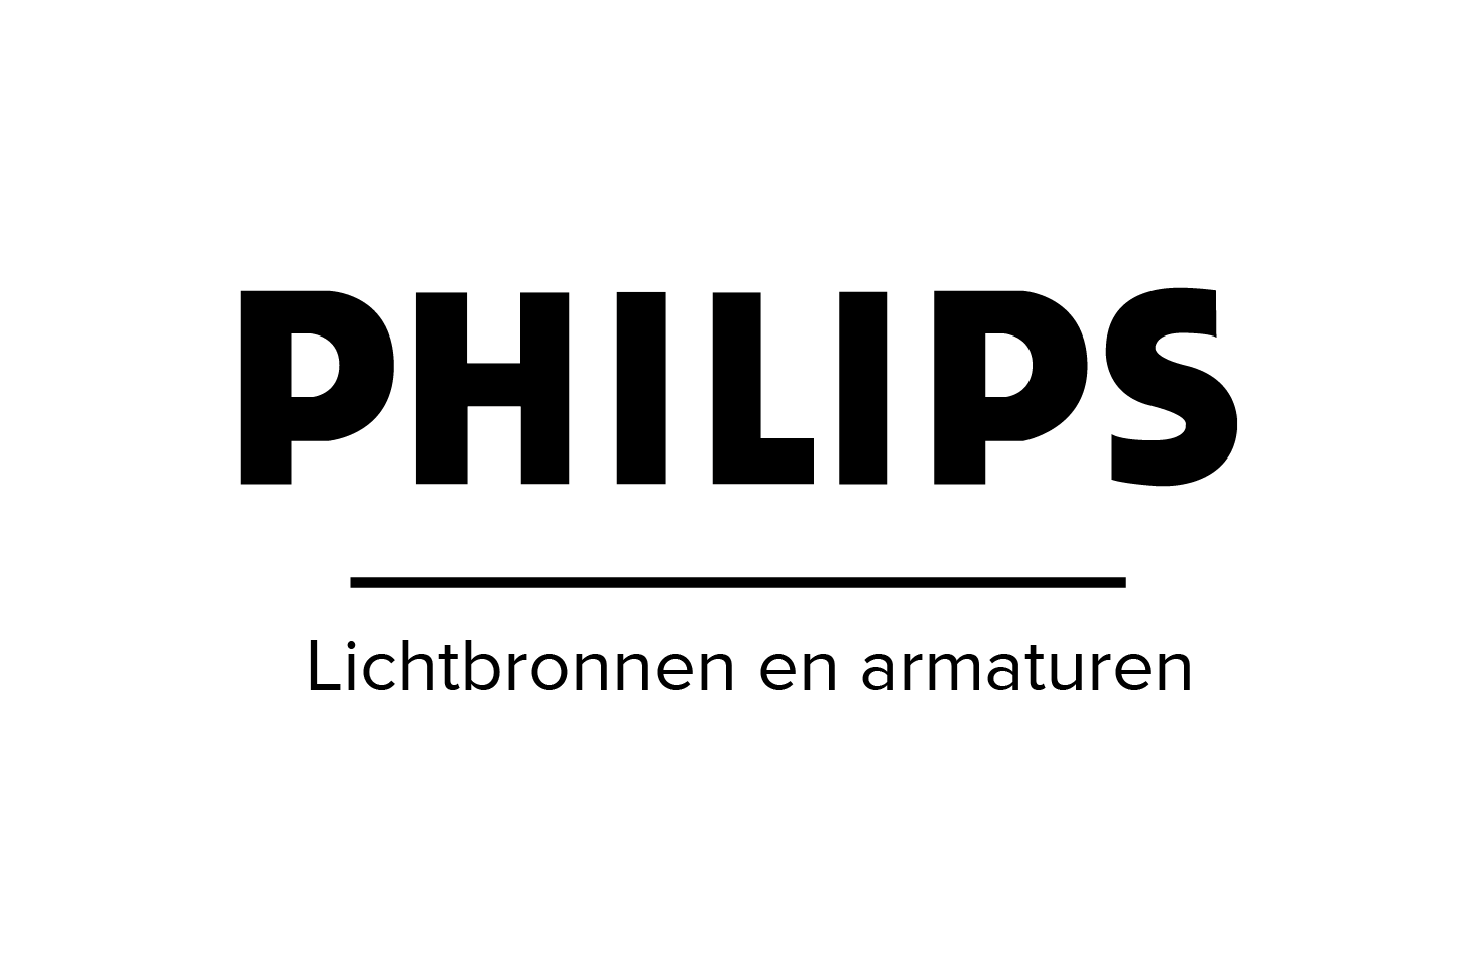 Philips lichtbronnen en armaturen